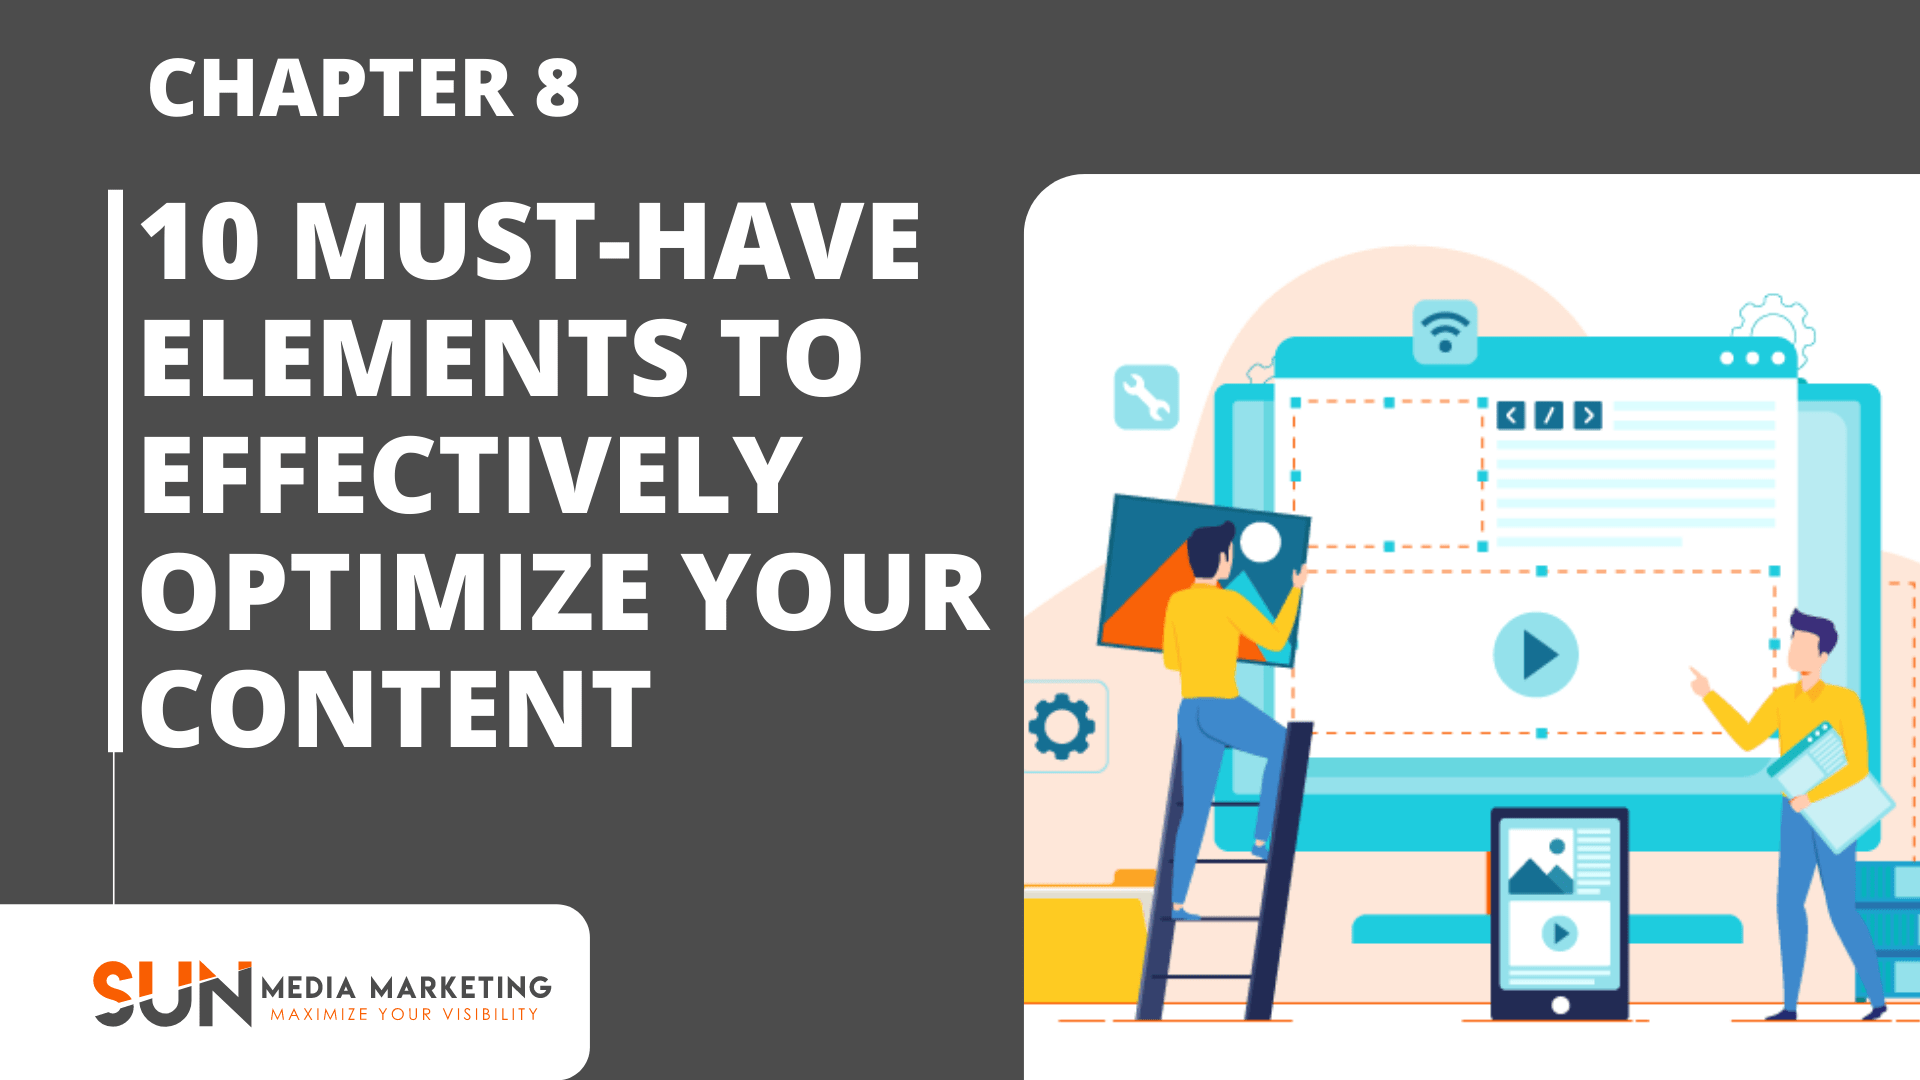 10 Must-Have Elements to Effectively Optimize Your Content